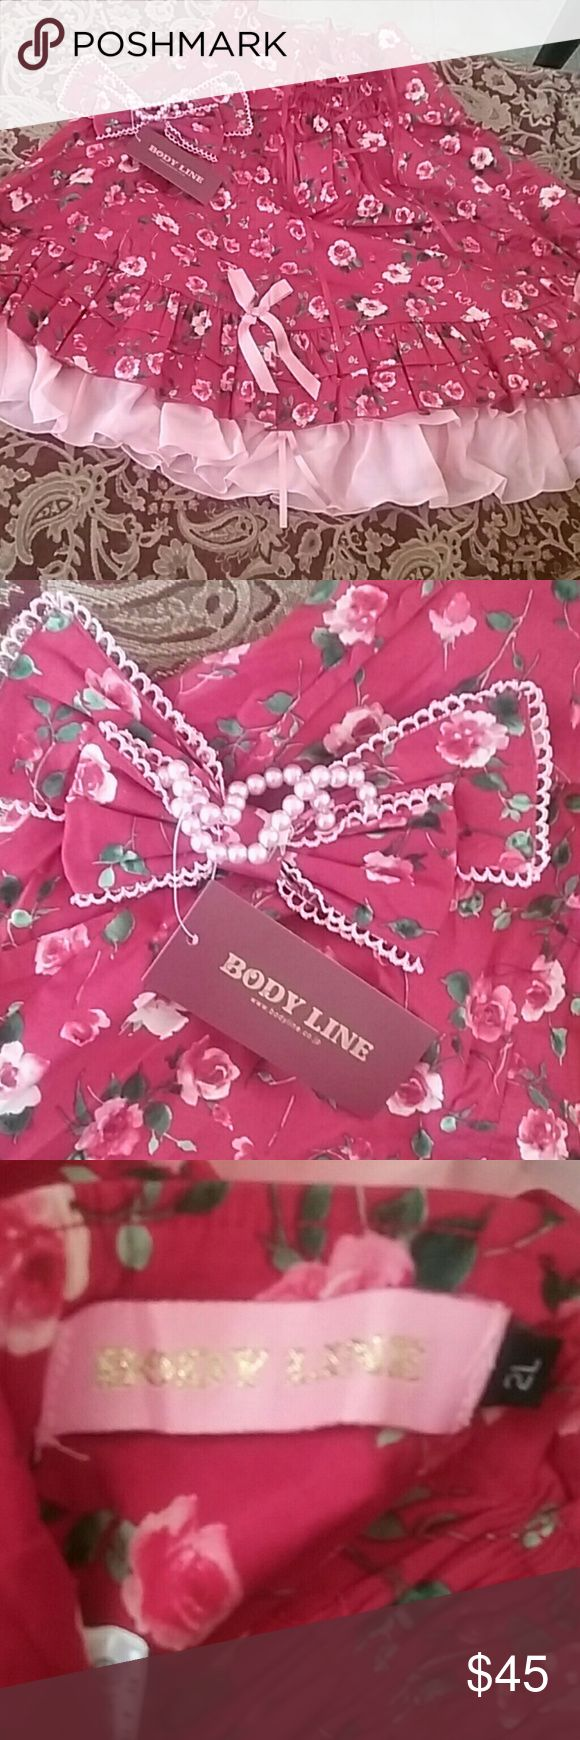 NIP Bodyline kawaii,fairy kei skirt!! New in package Bodyline rose and pink skirt with adjustible straps..Rose with light pink bows and liner.Also a headbow to match with pearls.Absolutly beautiful.Its says 2 l. But in Foreign sizes it would be a small to medium.Very Kawaii,fairy kei,lolita.In excellent new condition.Still in bsg.Took out to display.Mailed in orihinal bag. bodyline Skirts